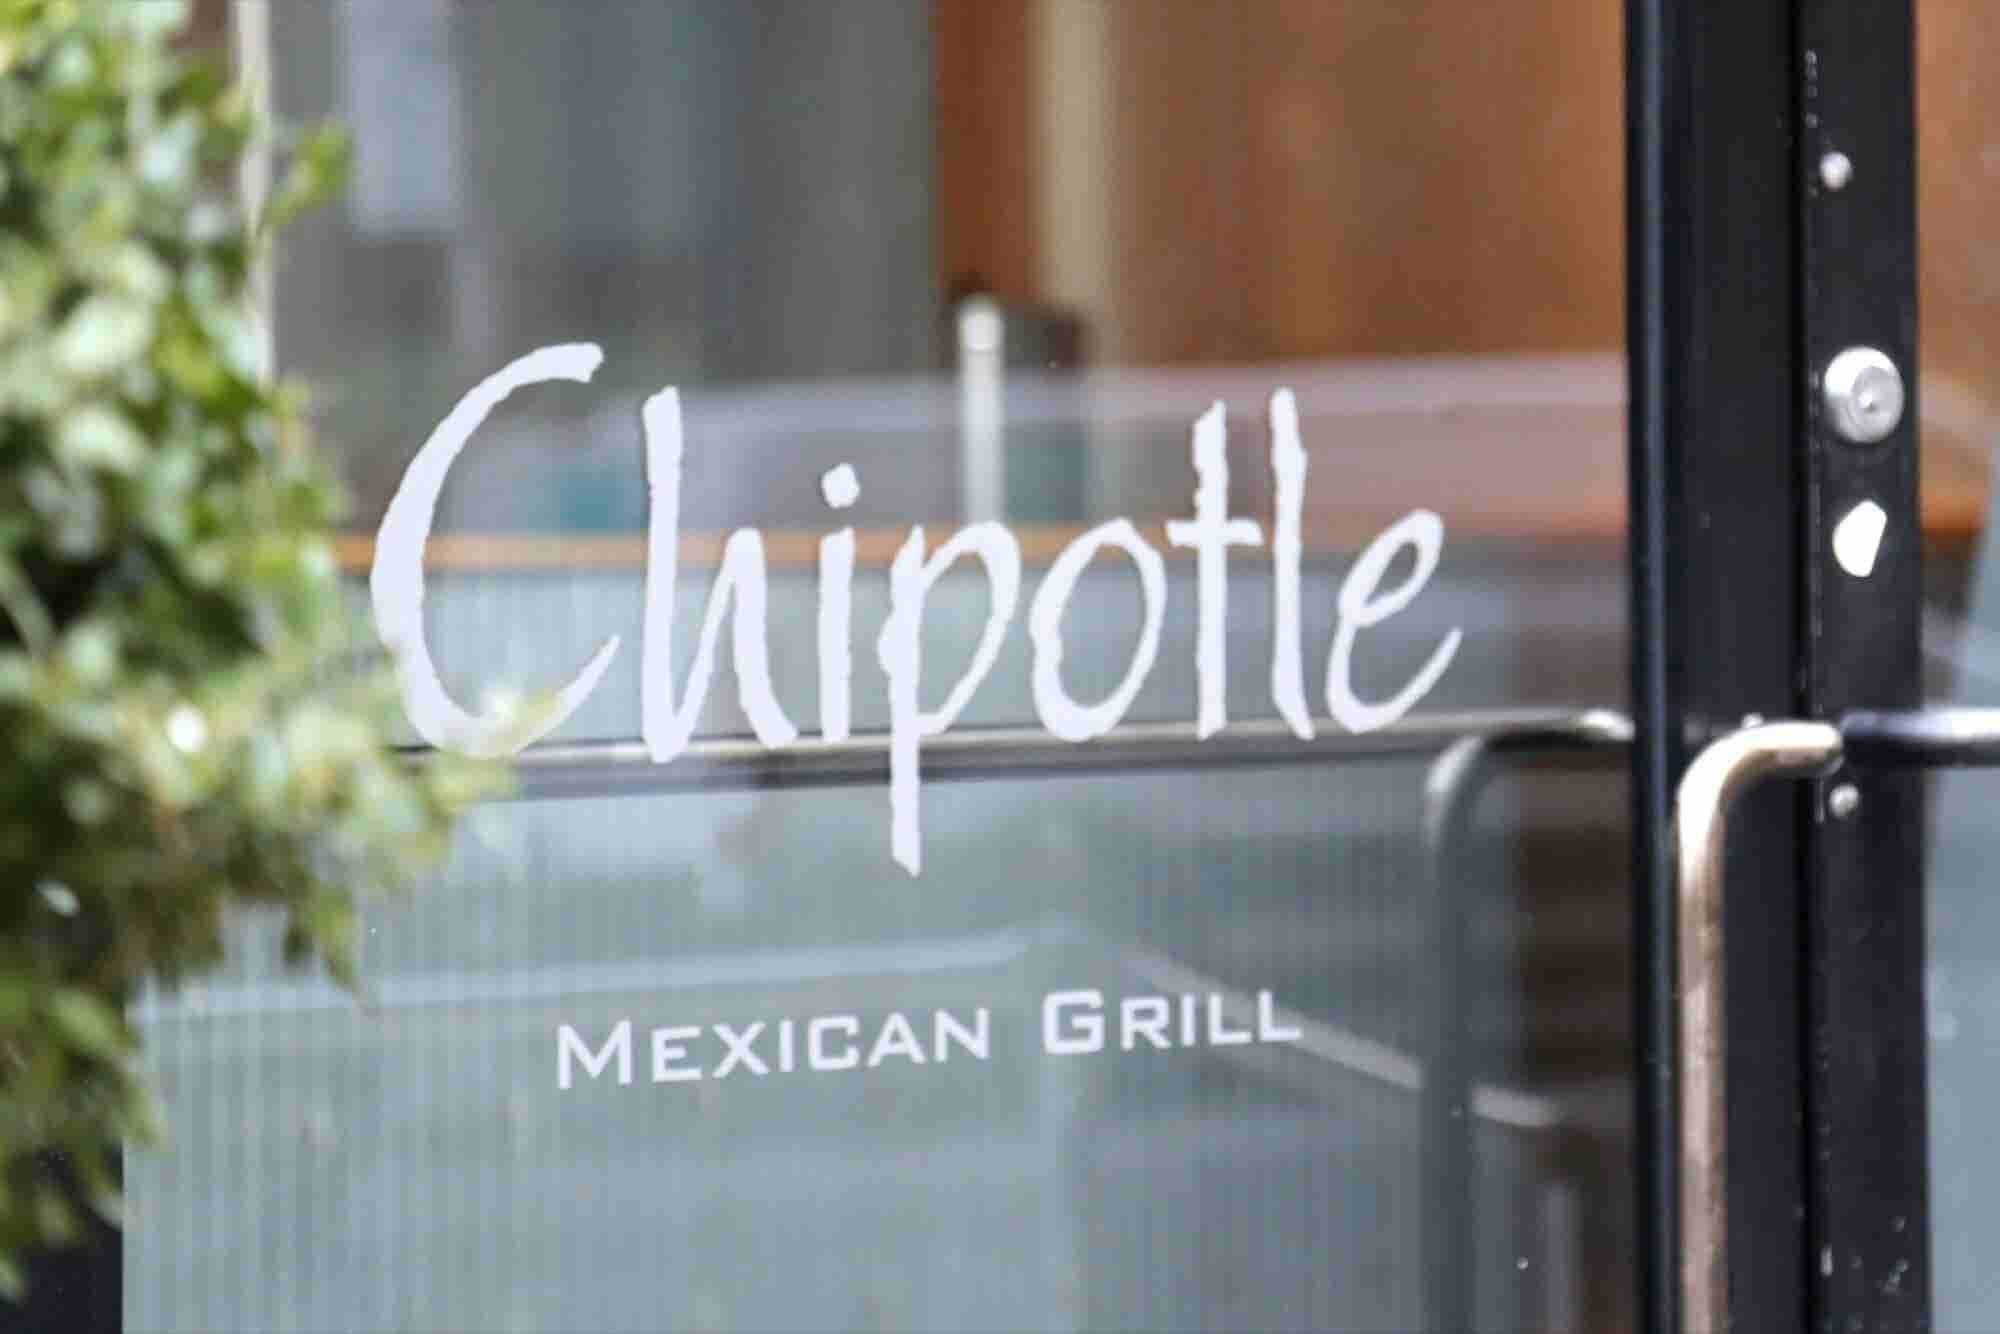 Chipotle Is Giving Away Free Burritos to Any Customer Who Plays This Online Game